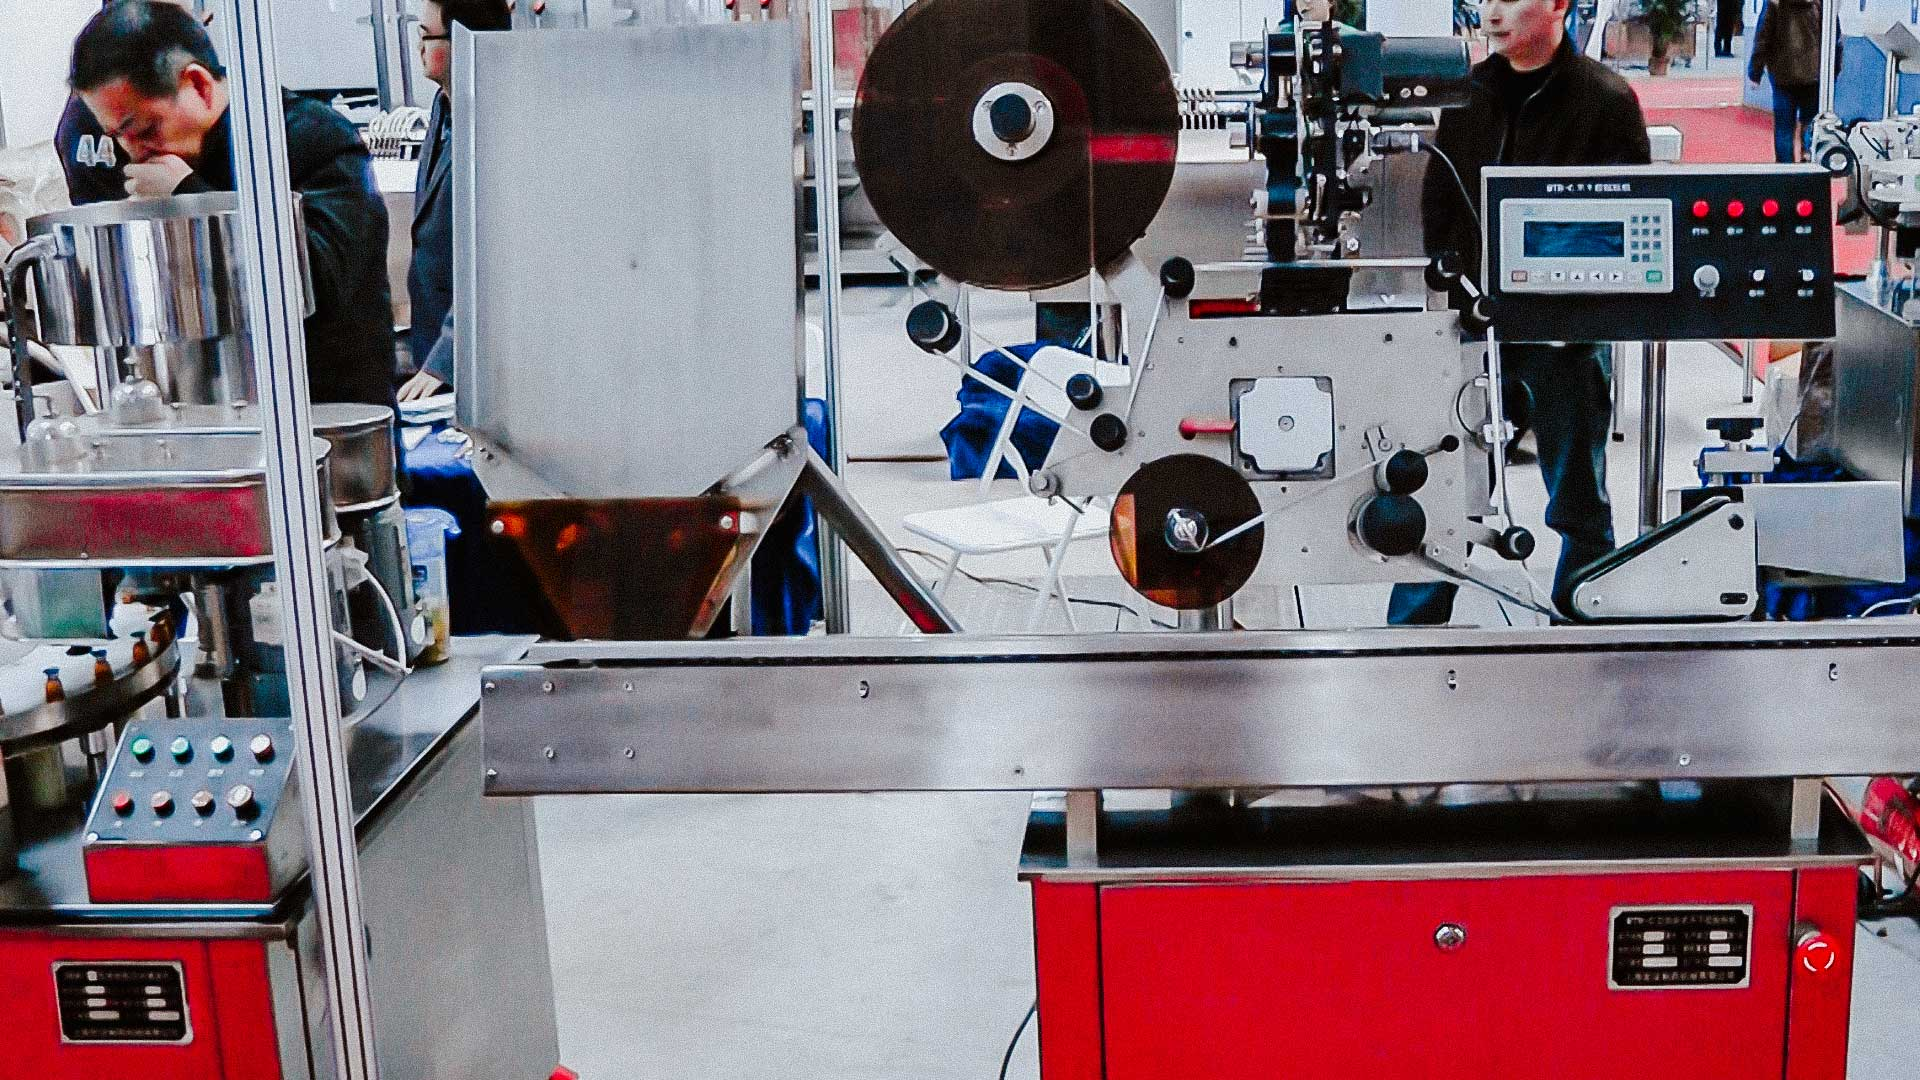 Equipment for self-adhesive labels on glass ampoules